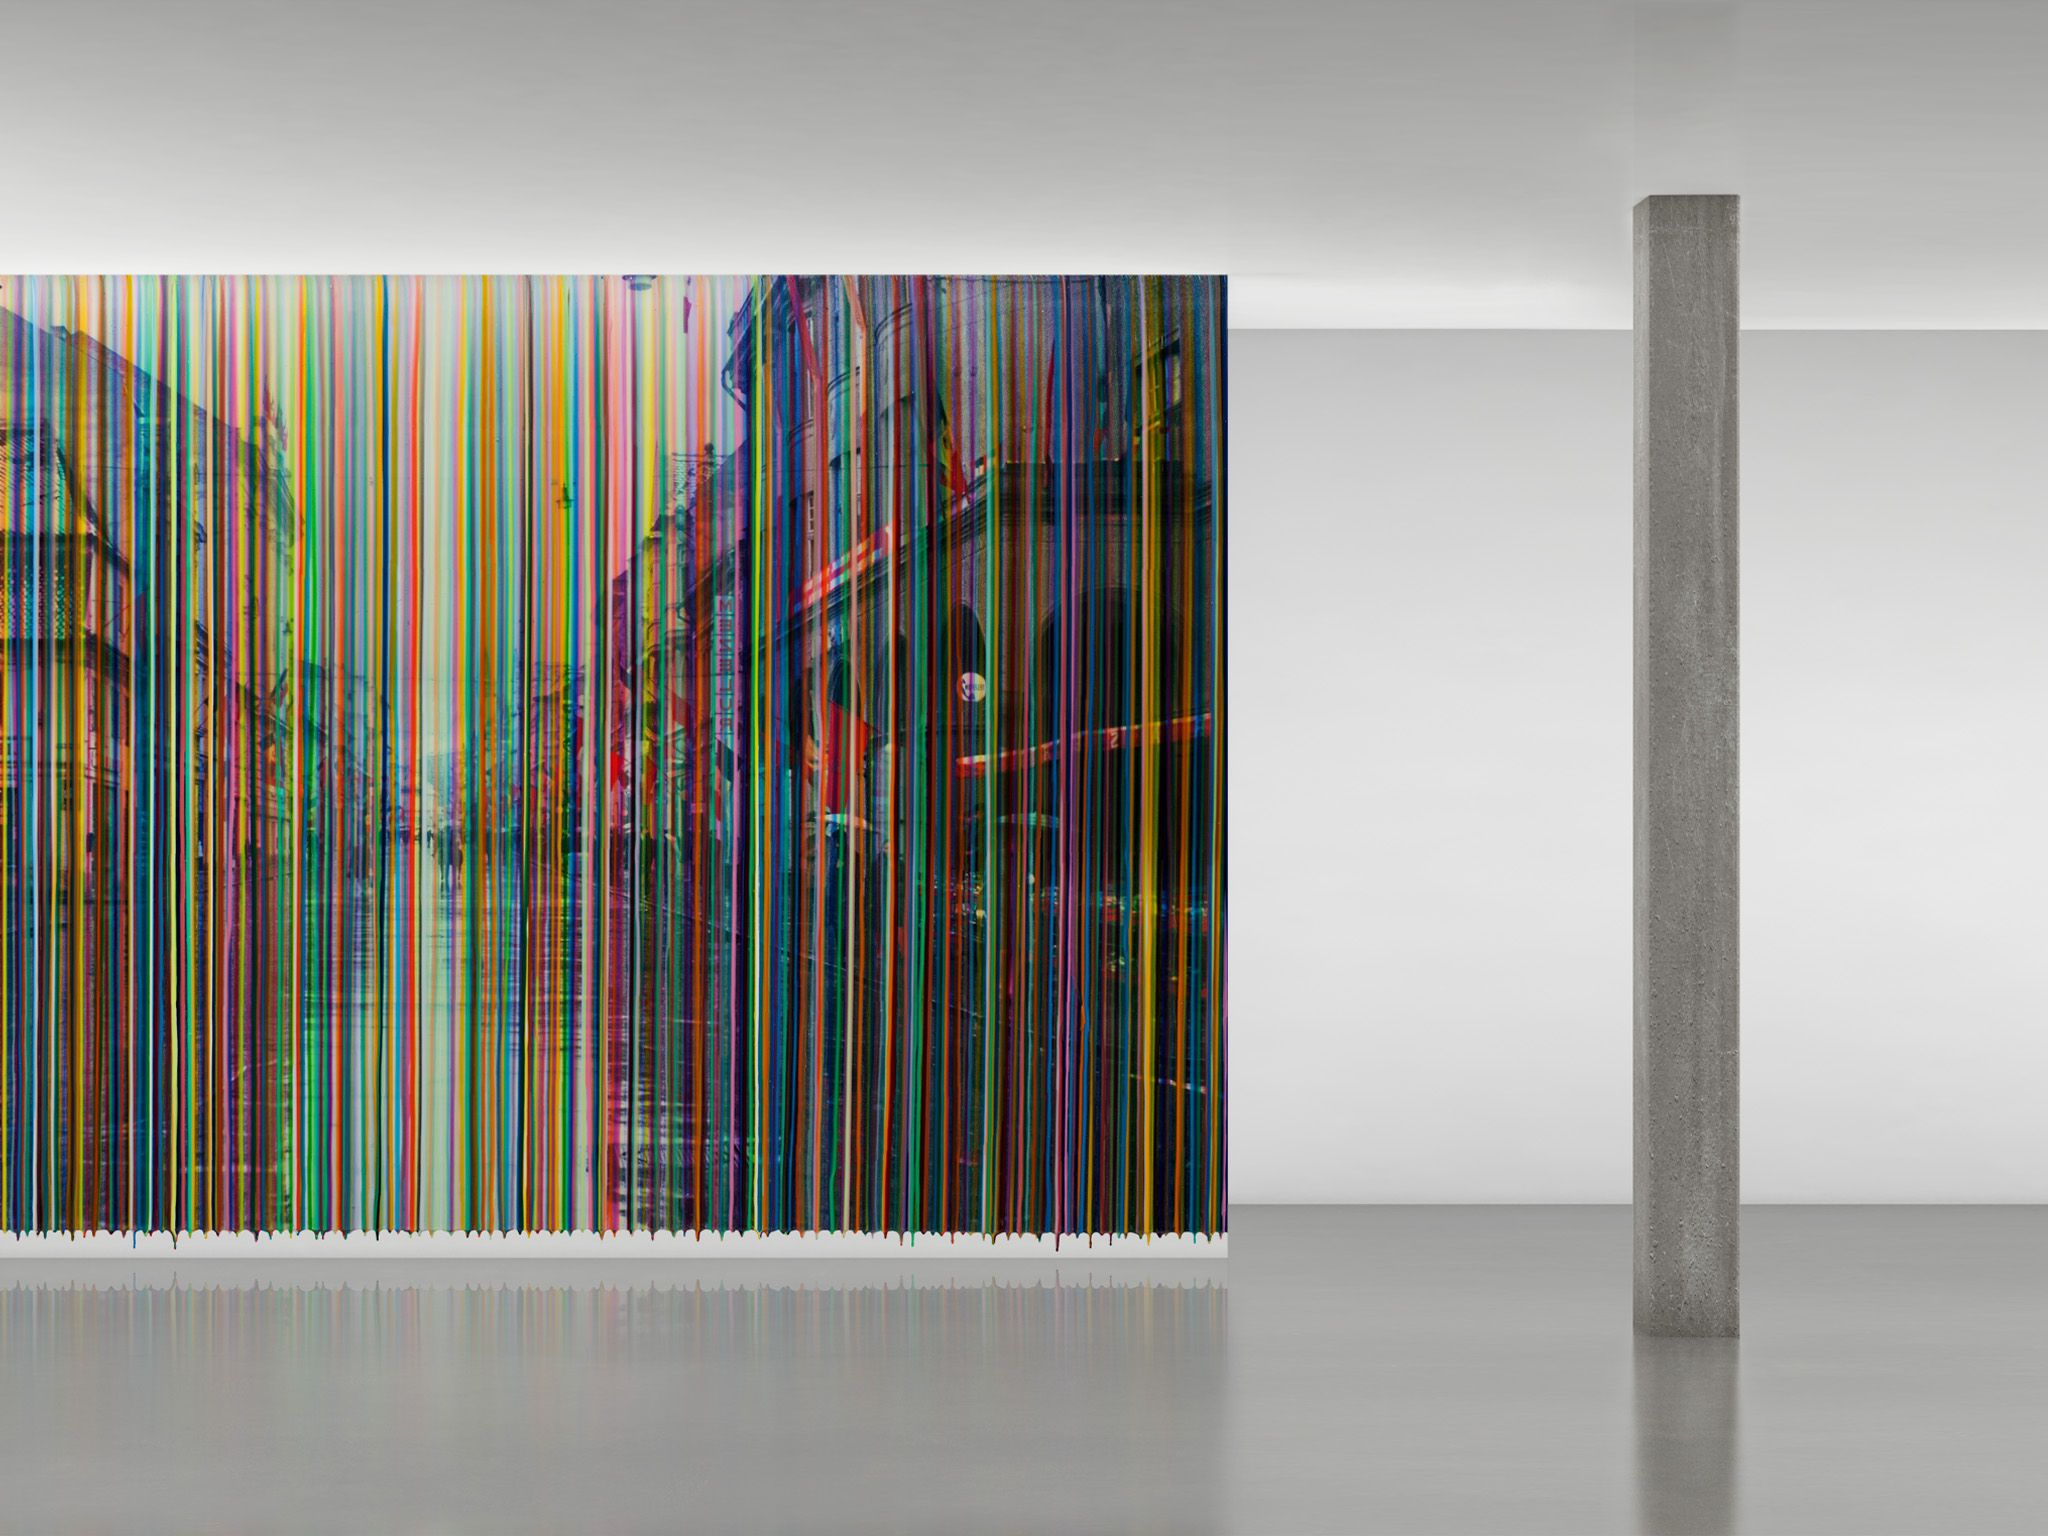 Maharam Digital Projects are large-scale wall installations created by esteemed artists, designers, illustrators, and photographers.